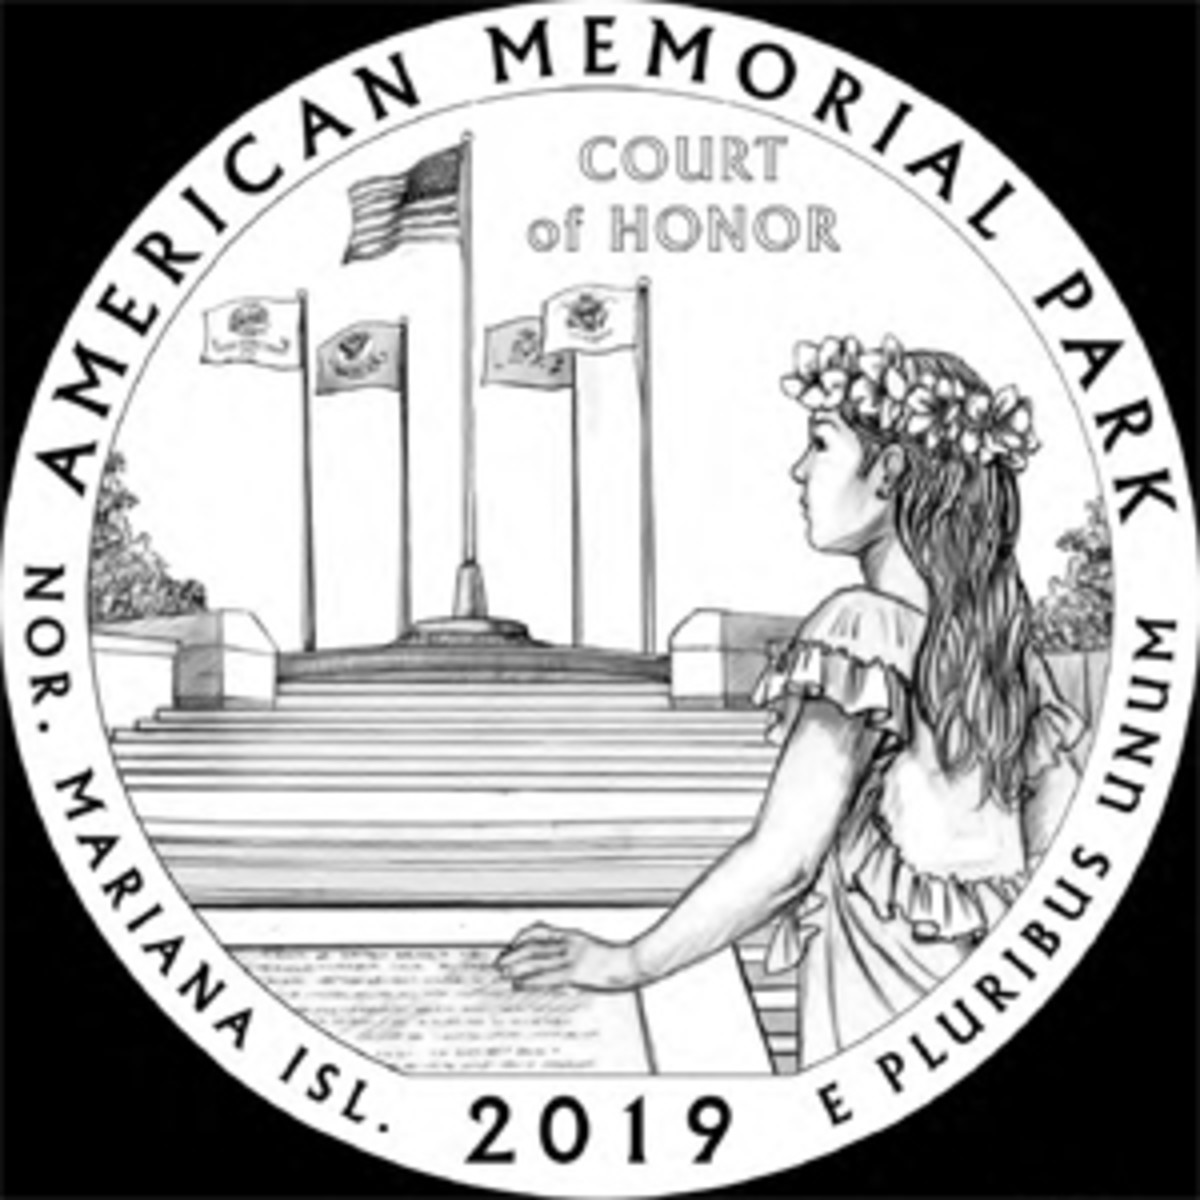 During a Jan. 16 meeting, the Mint also recommended the final design for the 2019 quarter honoring the American Memorial Park in the Northern Marianas Islands.